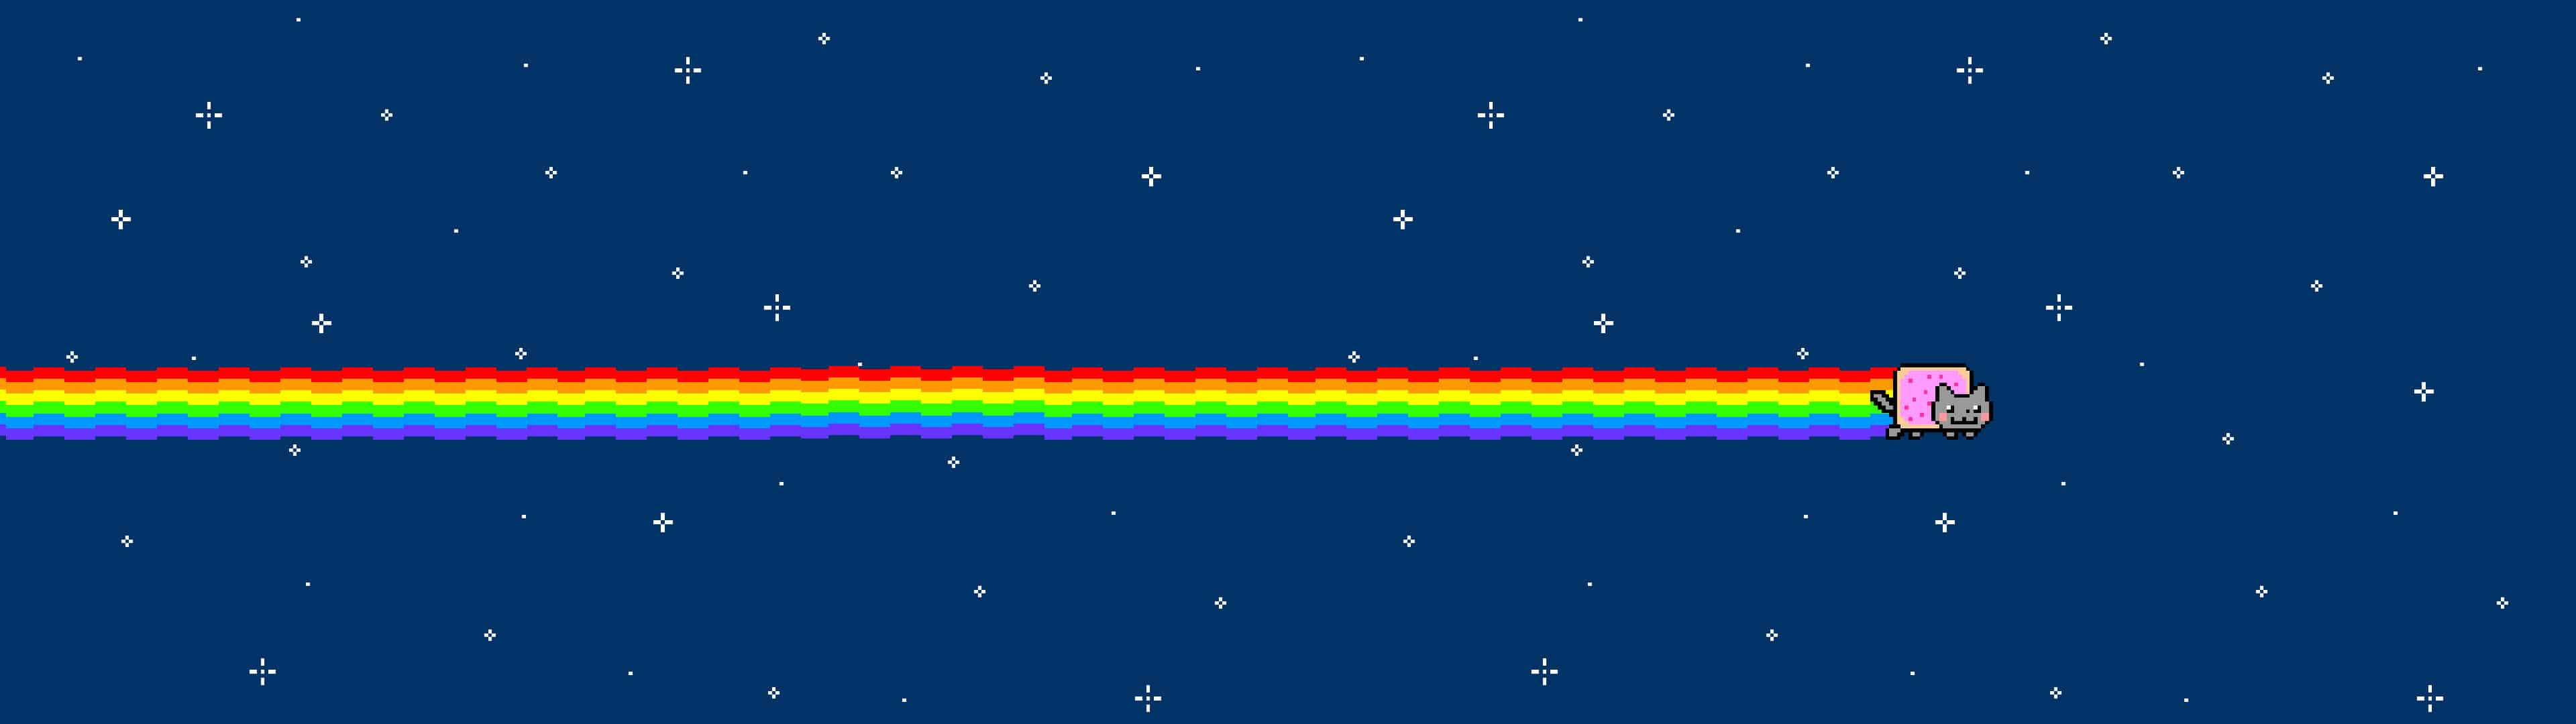 Nyan Cat Dual Monitor Wallpaper | Pixelz